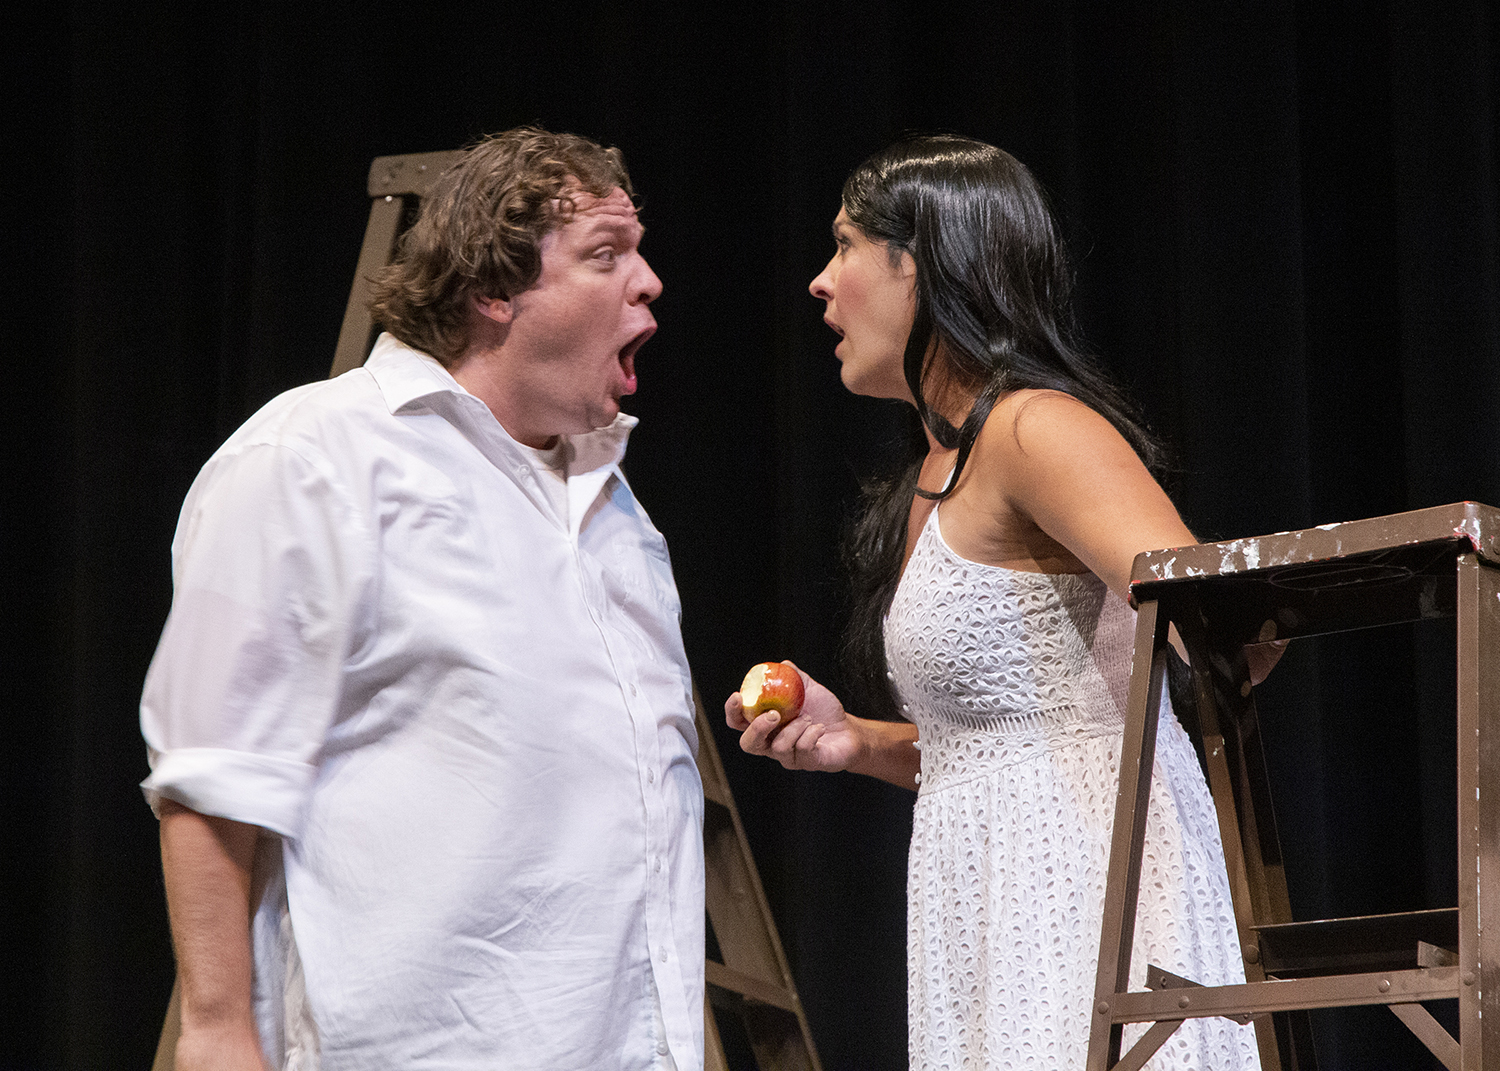 An actor playing Adam and an actor playing Eve on stage